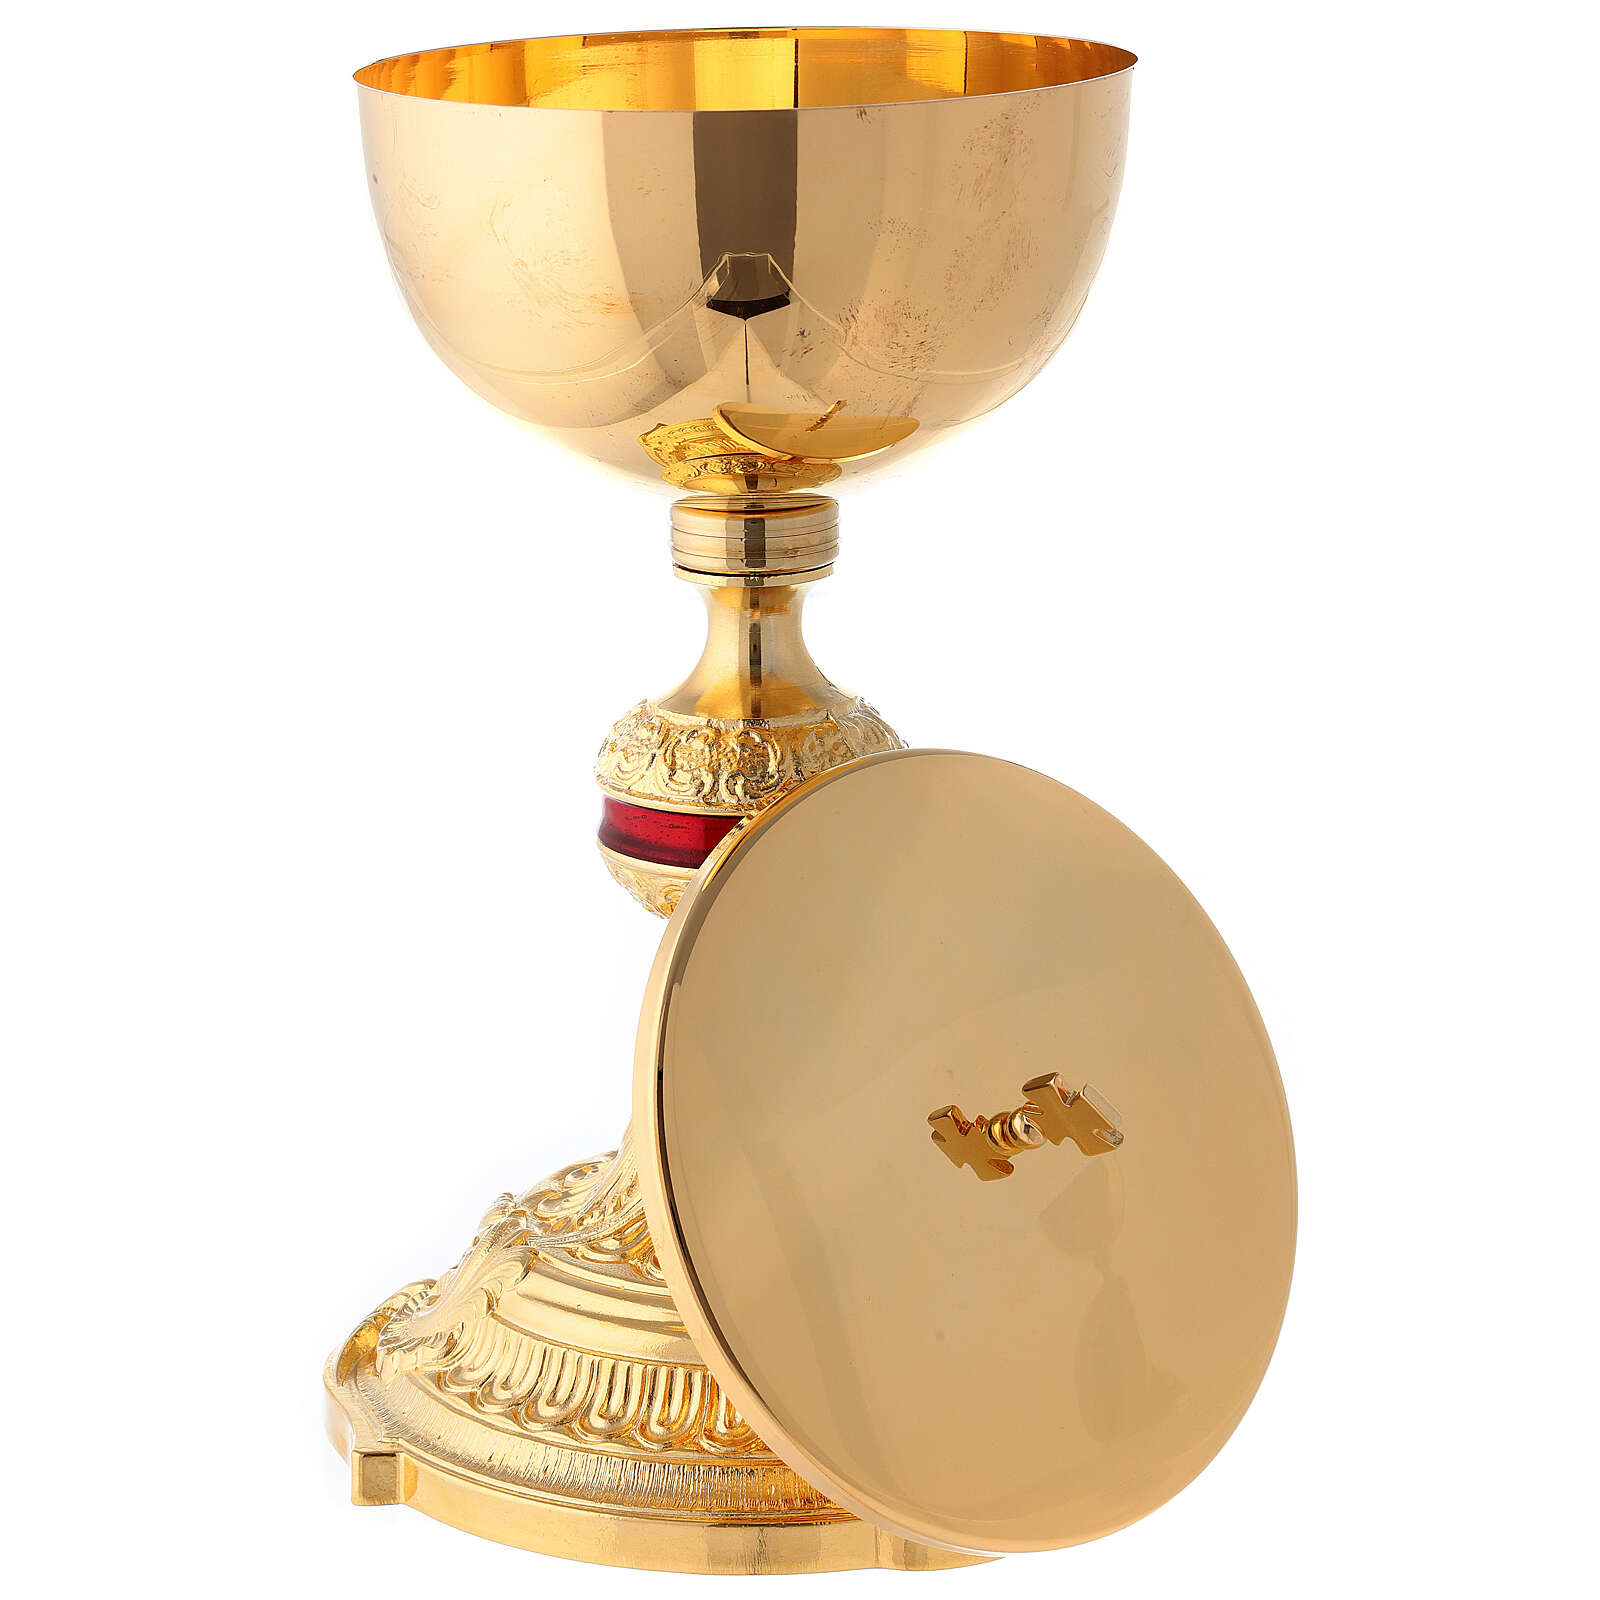 Brass chalice and ciborium with red ennameled node 4